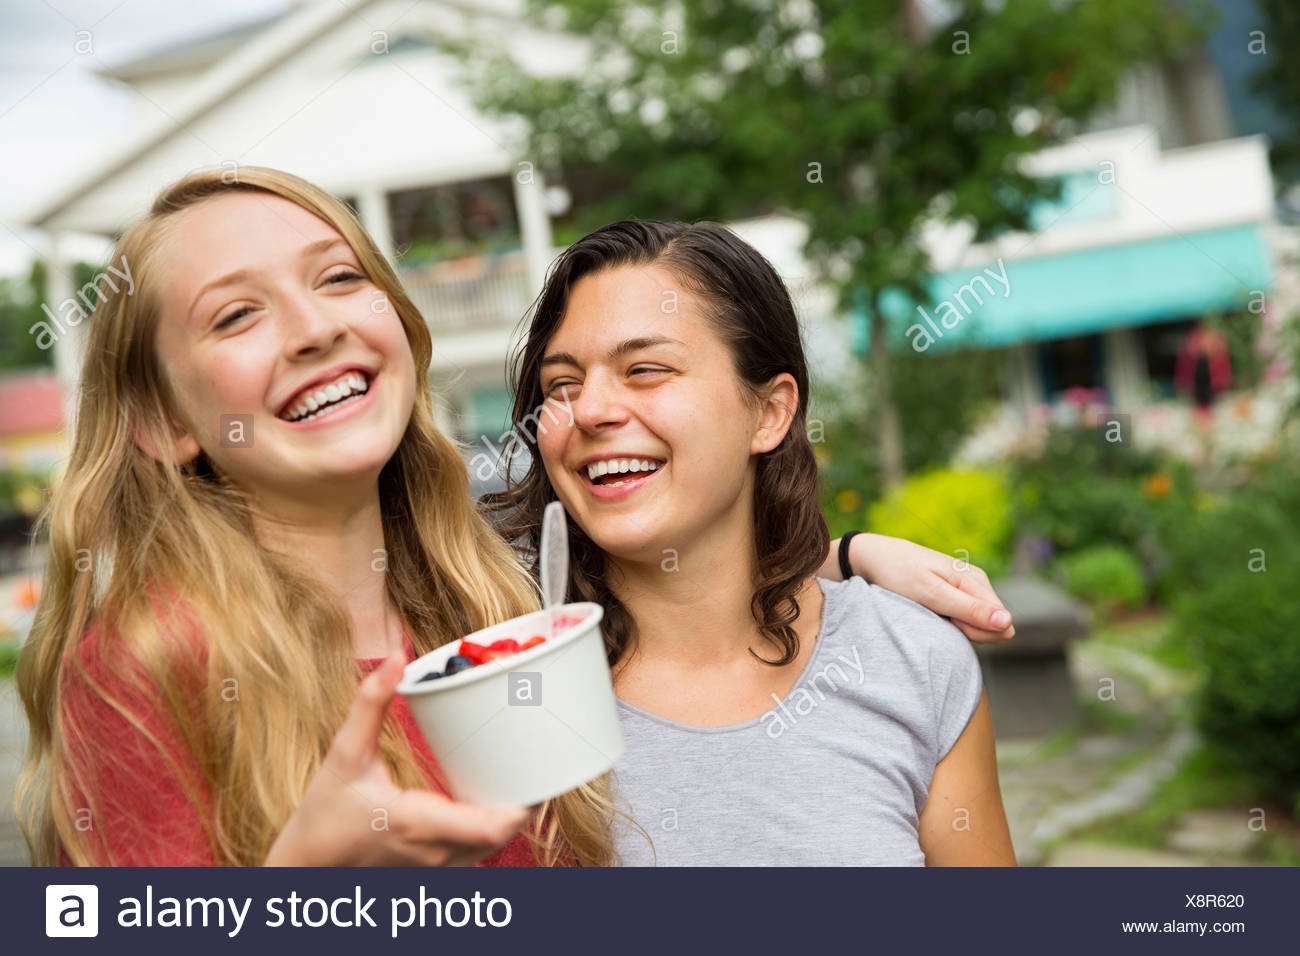 Two girls hugging and laughing. - Stock Image